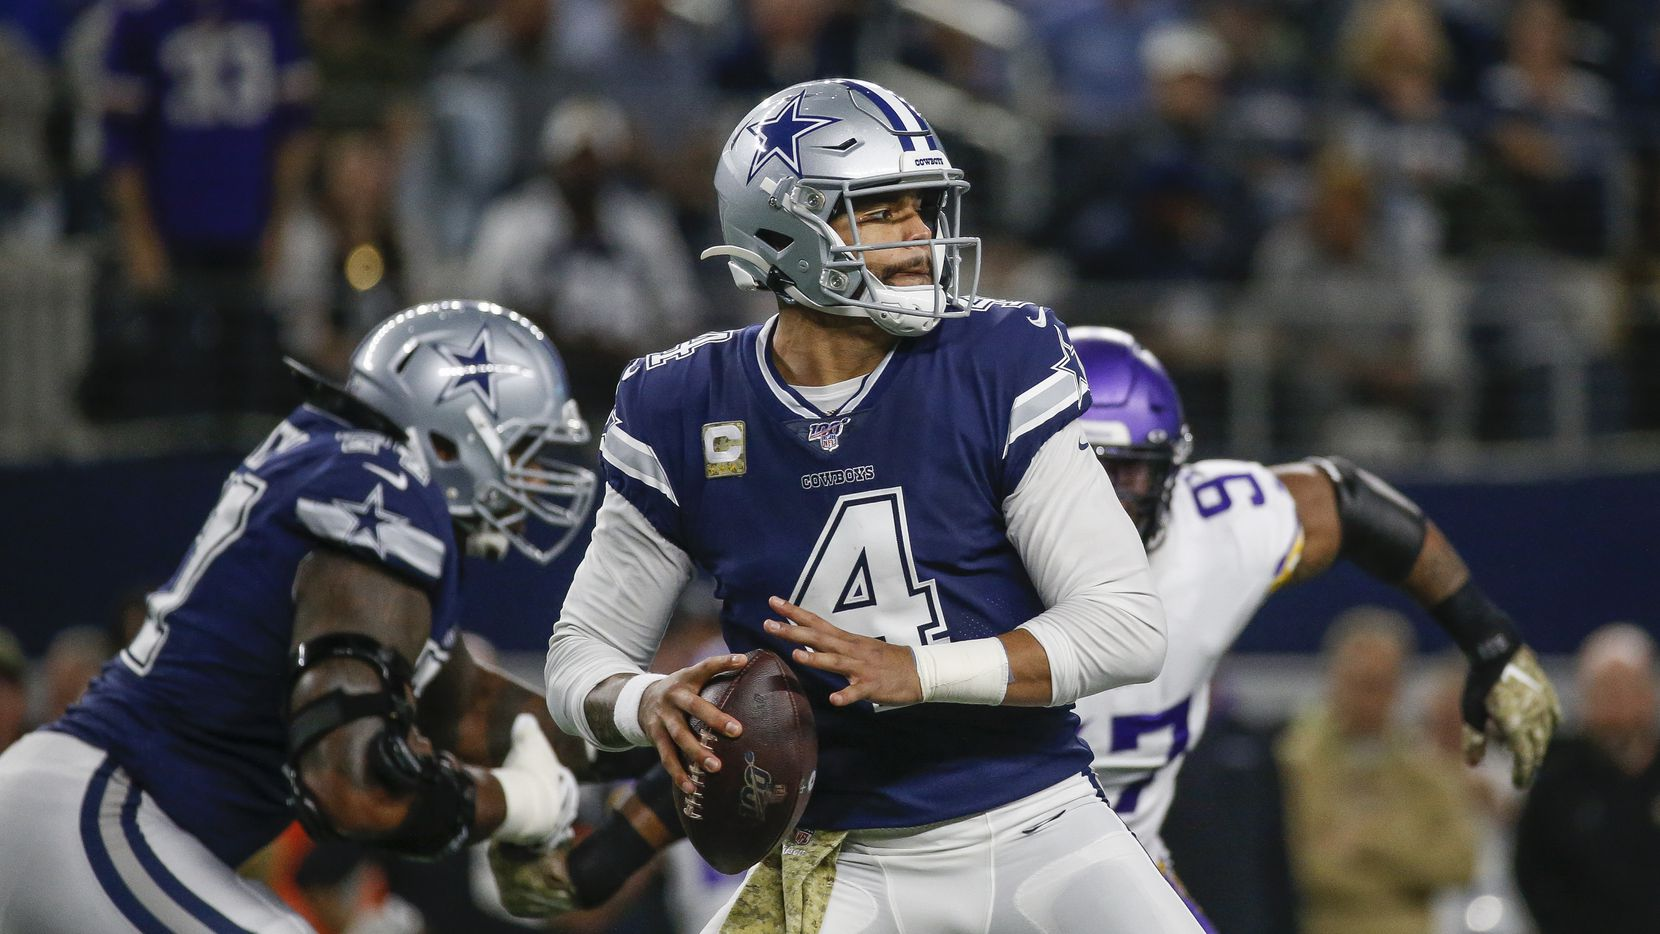 Dallas Cowboys quarterback Dak Prescott (4) fires off a pass during the first quarter of an NFL football game between the Dallas Cowboys and the Minnesota Vikings at AT&T Stadium in Arlington, Texas, on Sunday, Nov. 10, 2019.